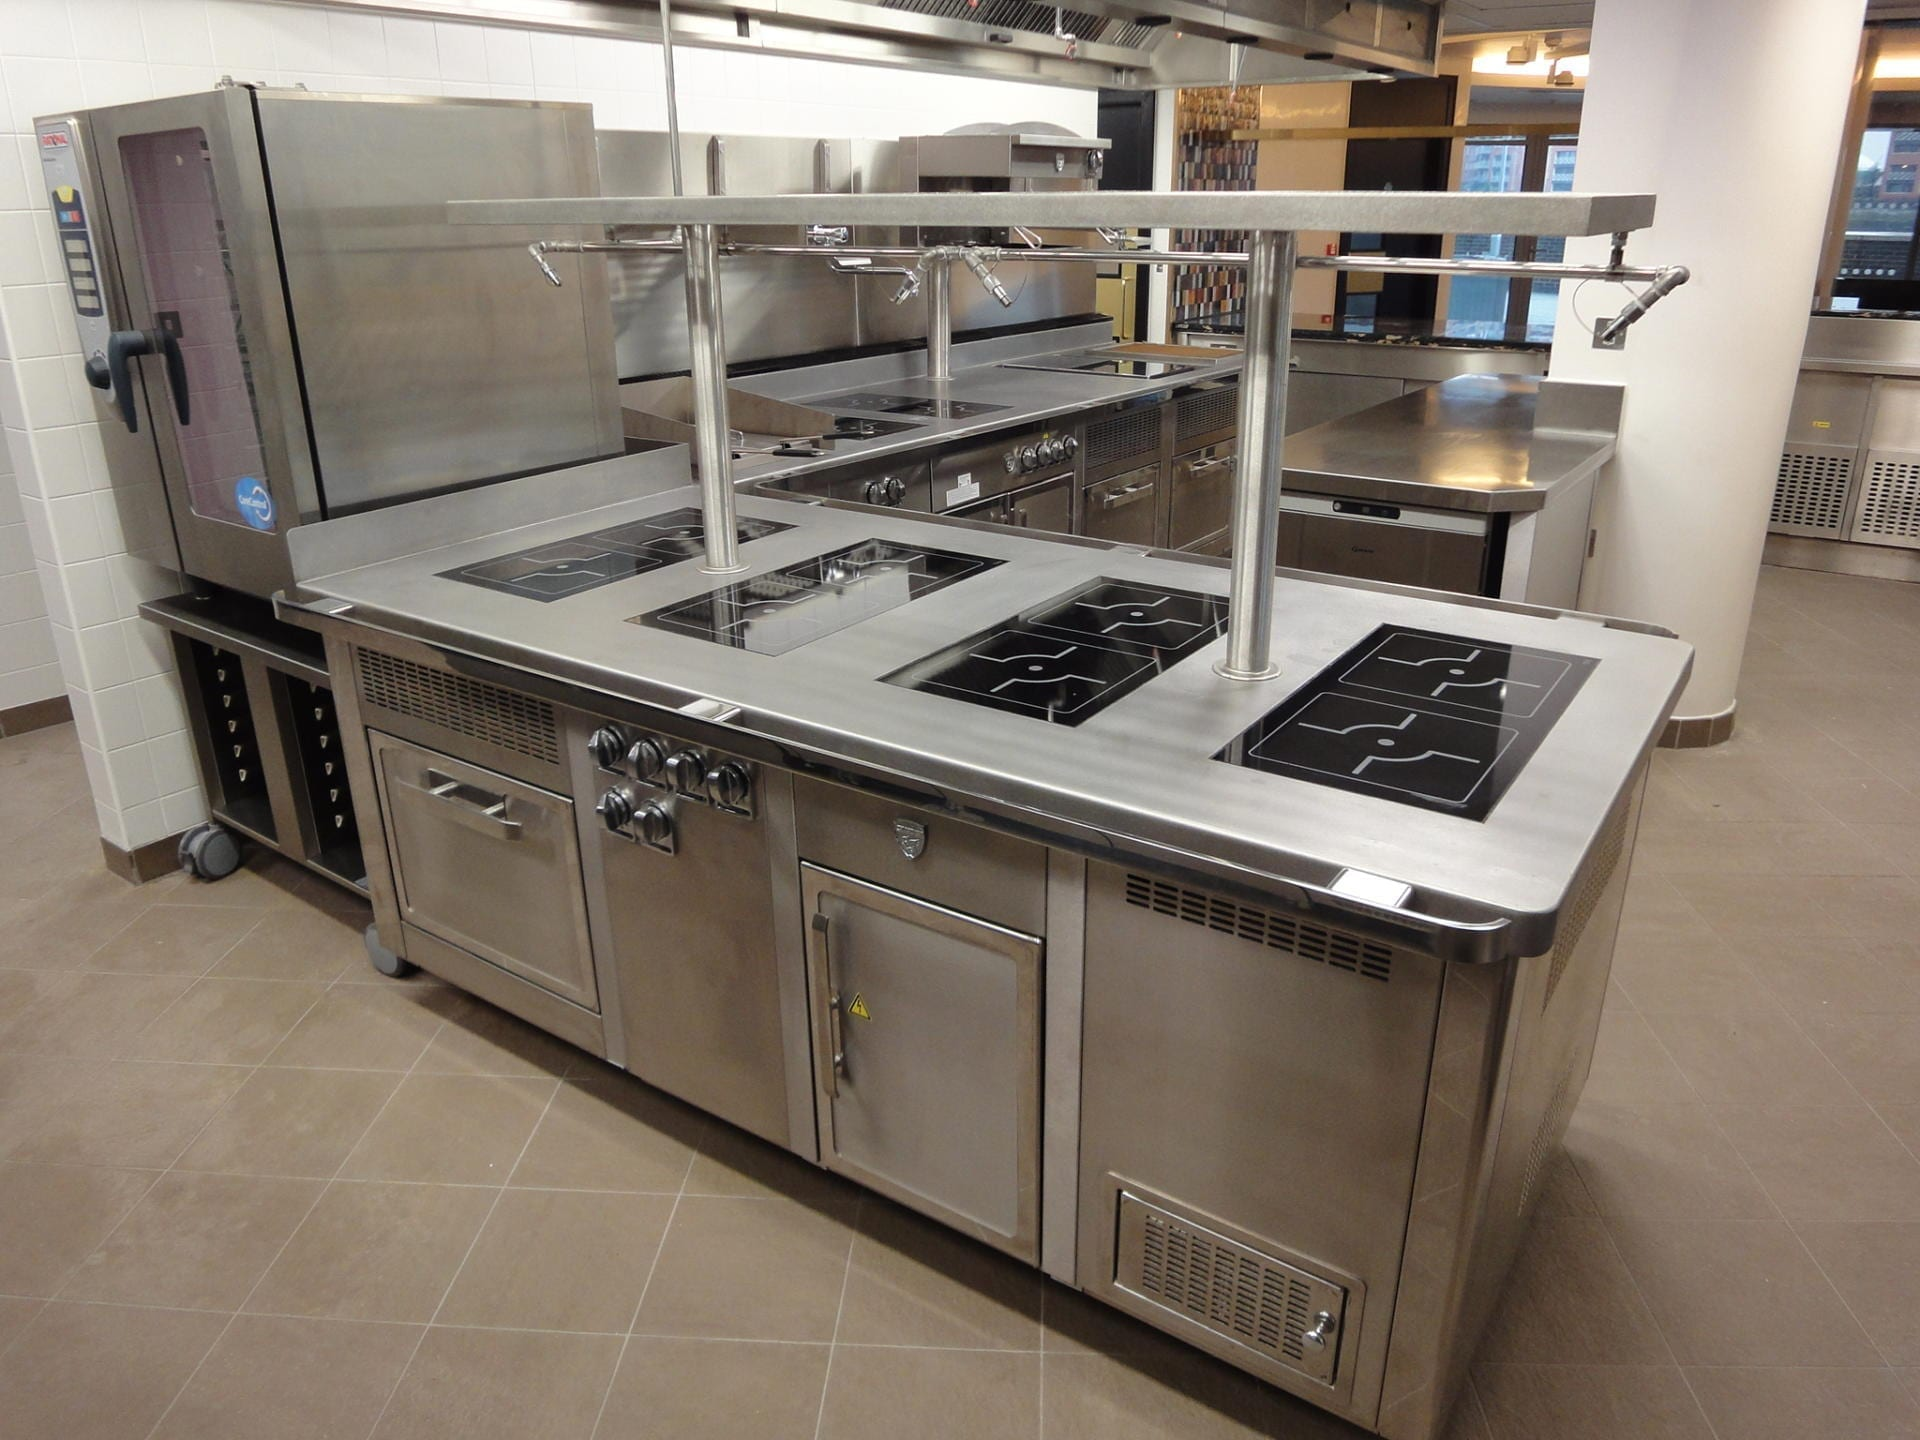 Hotel-Verta-Von-Essen-Battersea-Kitchen-Fabrication-Stainless-Steel-Commercial-spacecatering_4